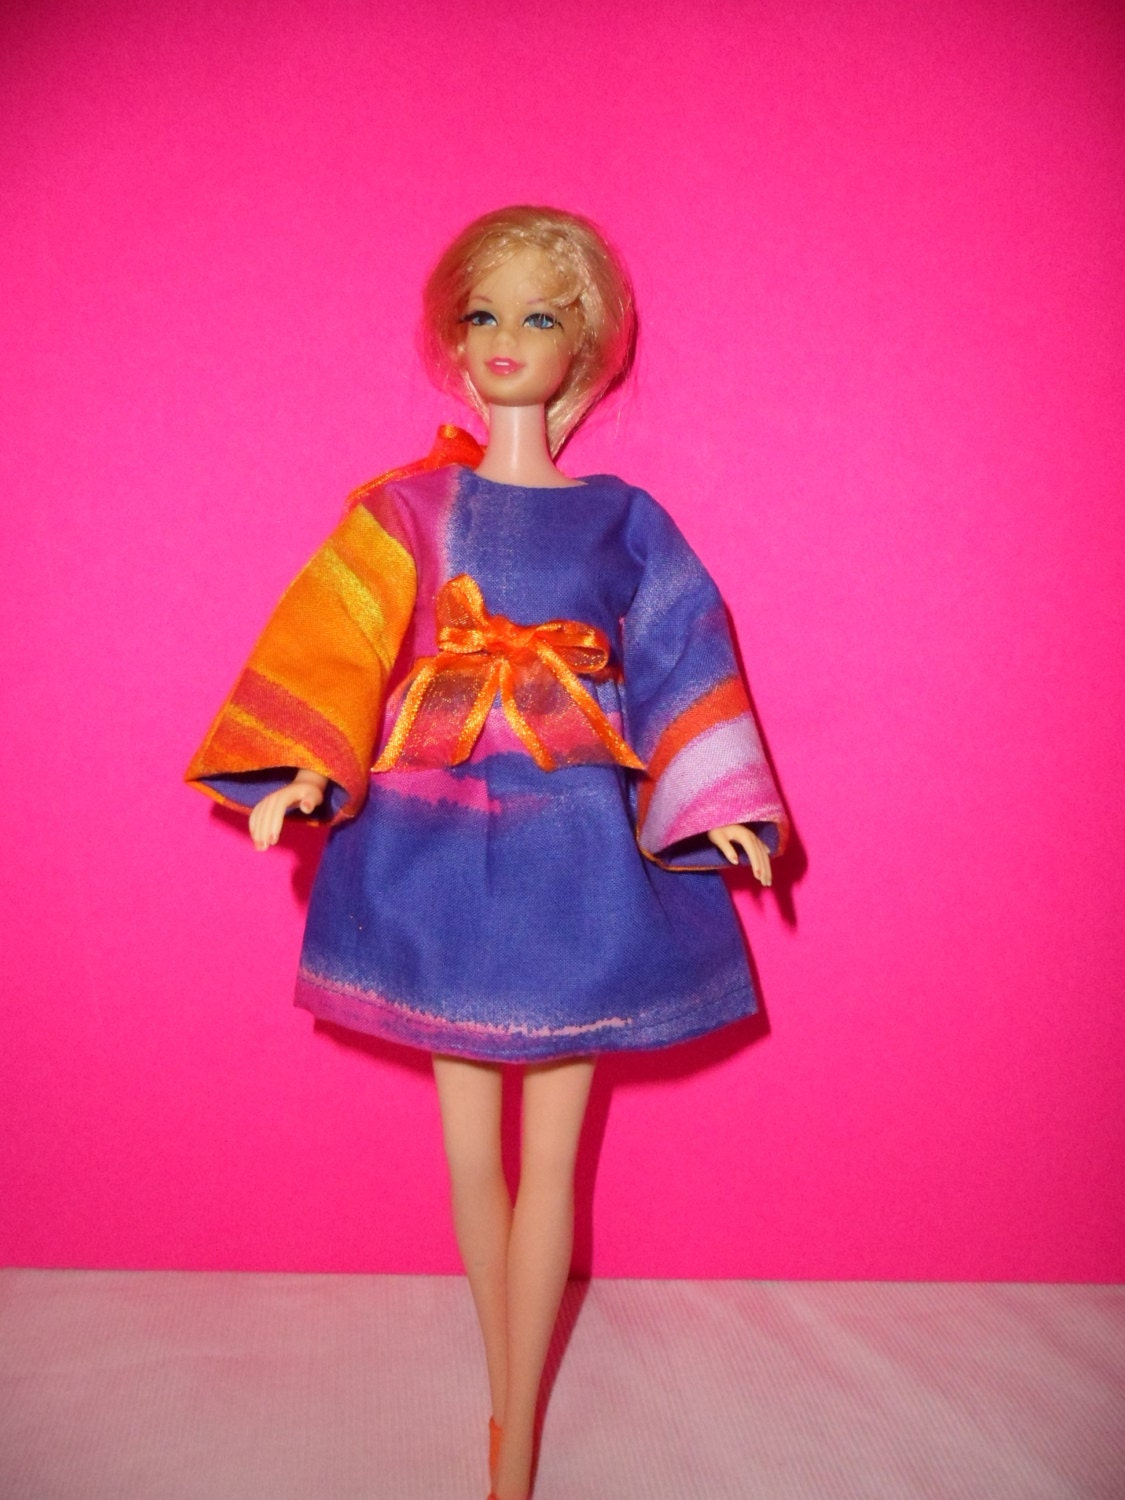 mod barbie stacy doll clothes fashions dress for vintage